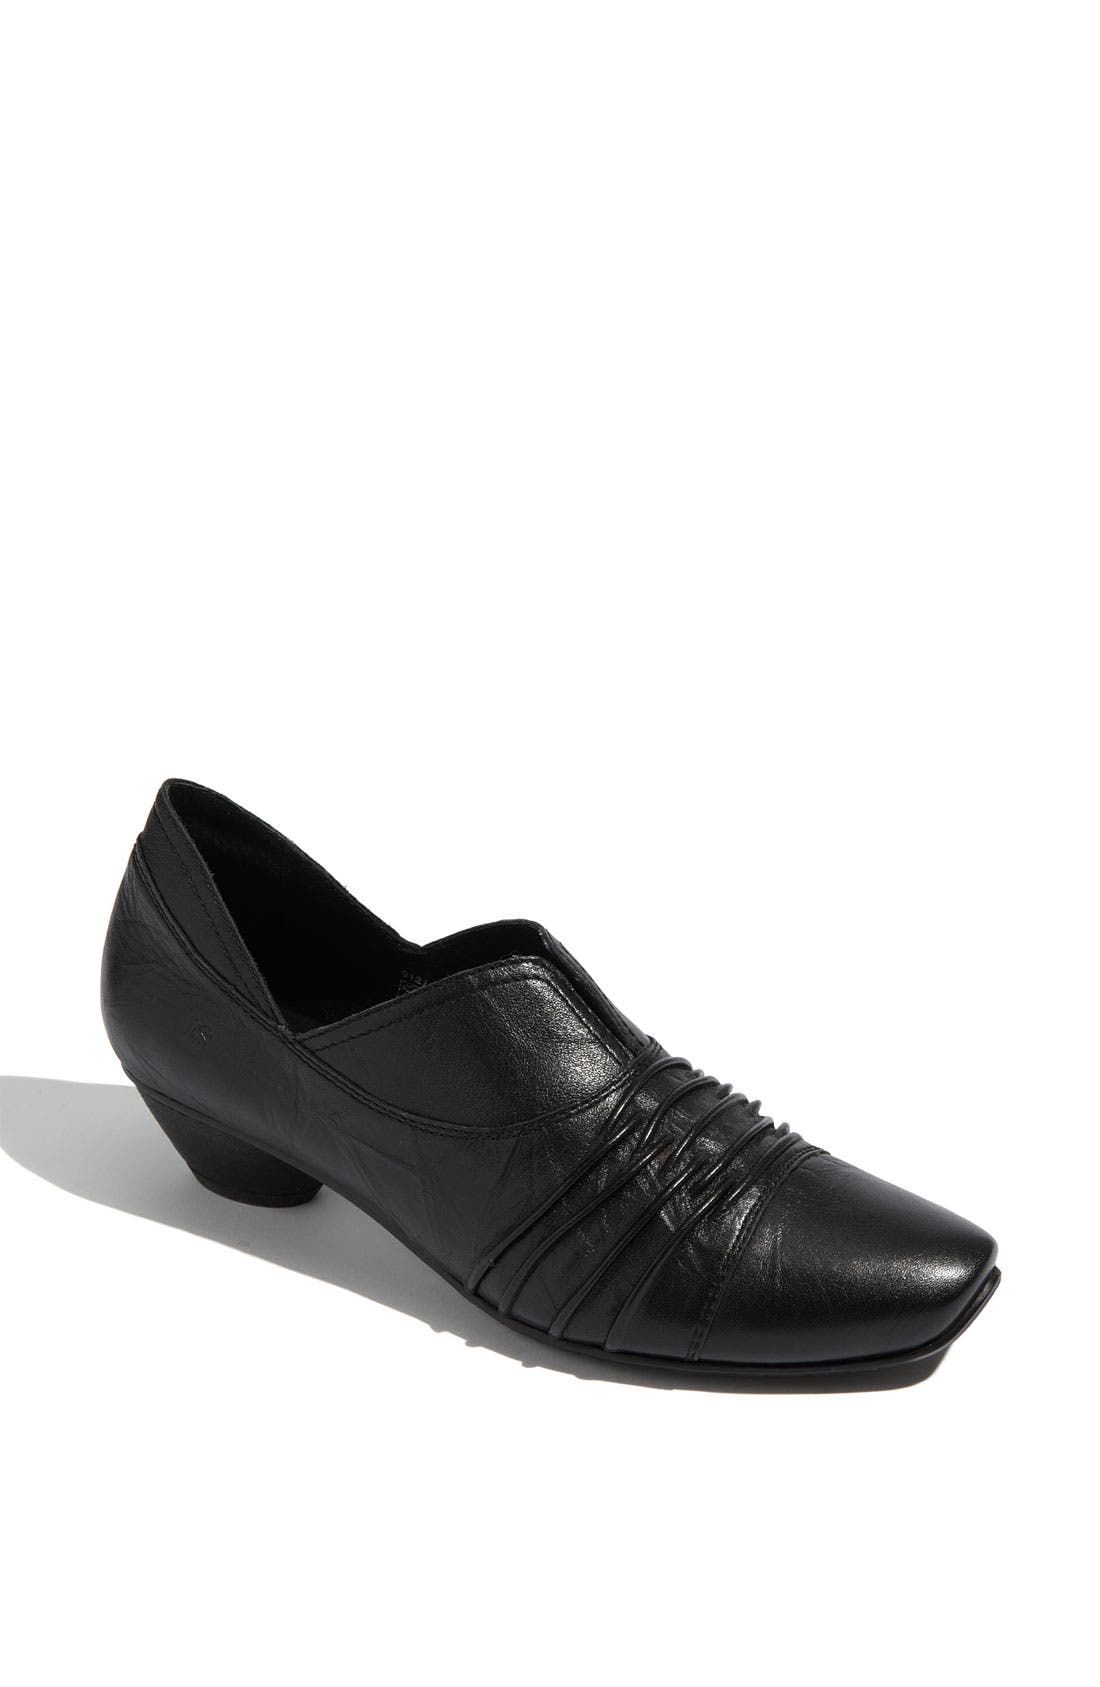 Alternate Image 1 Selected - Josef Seibel 'Tina' Slip-On